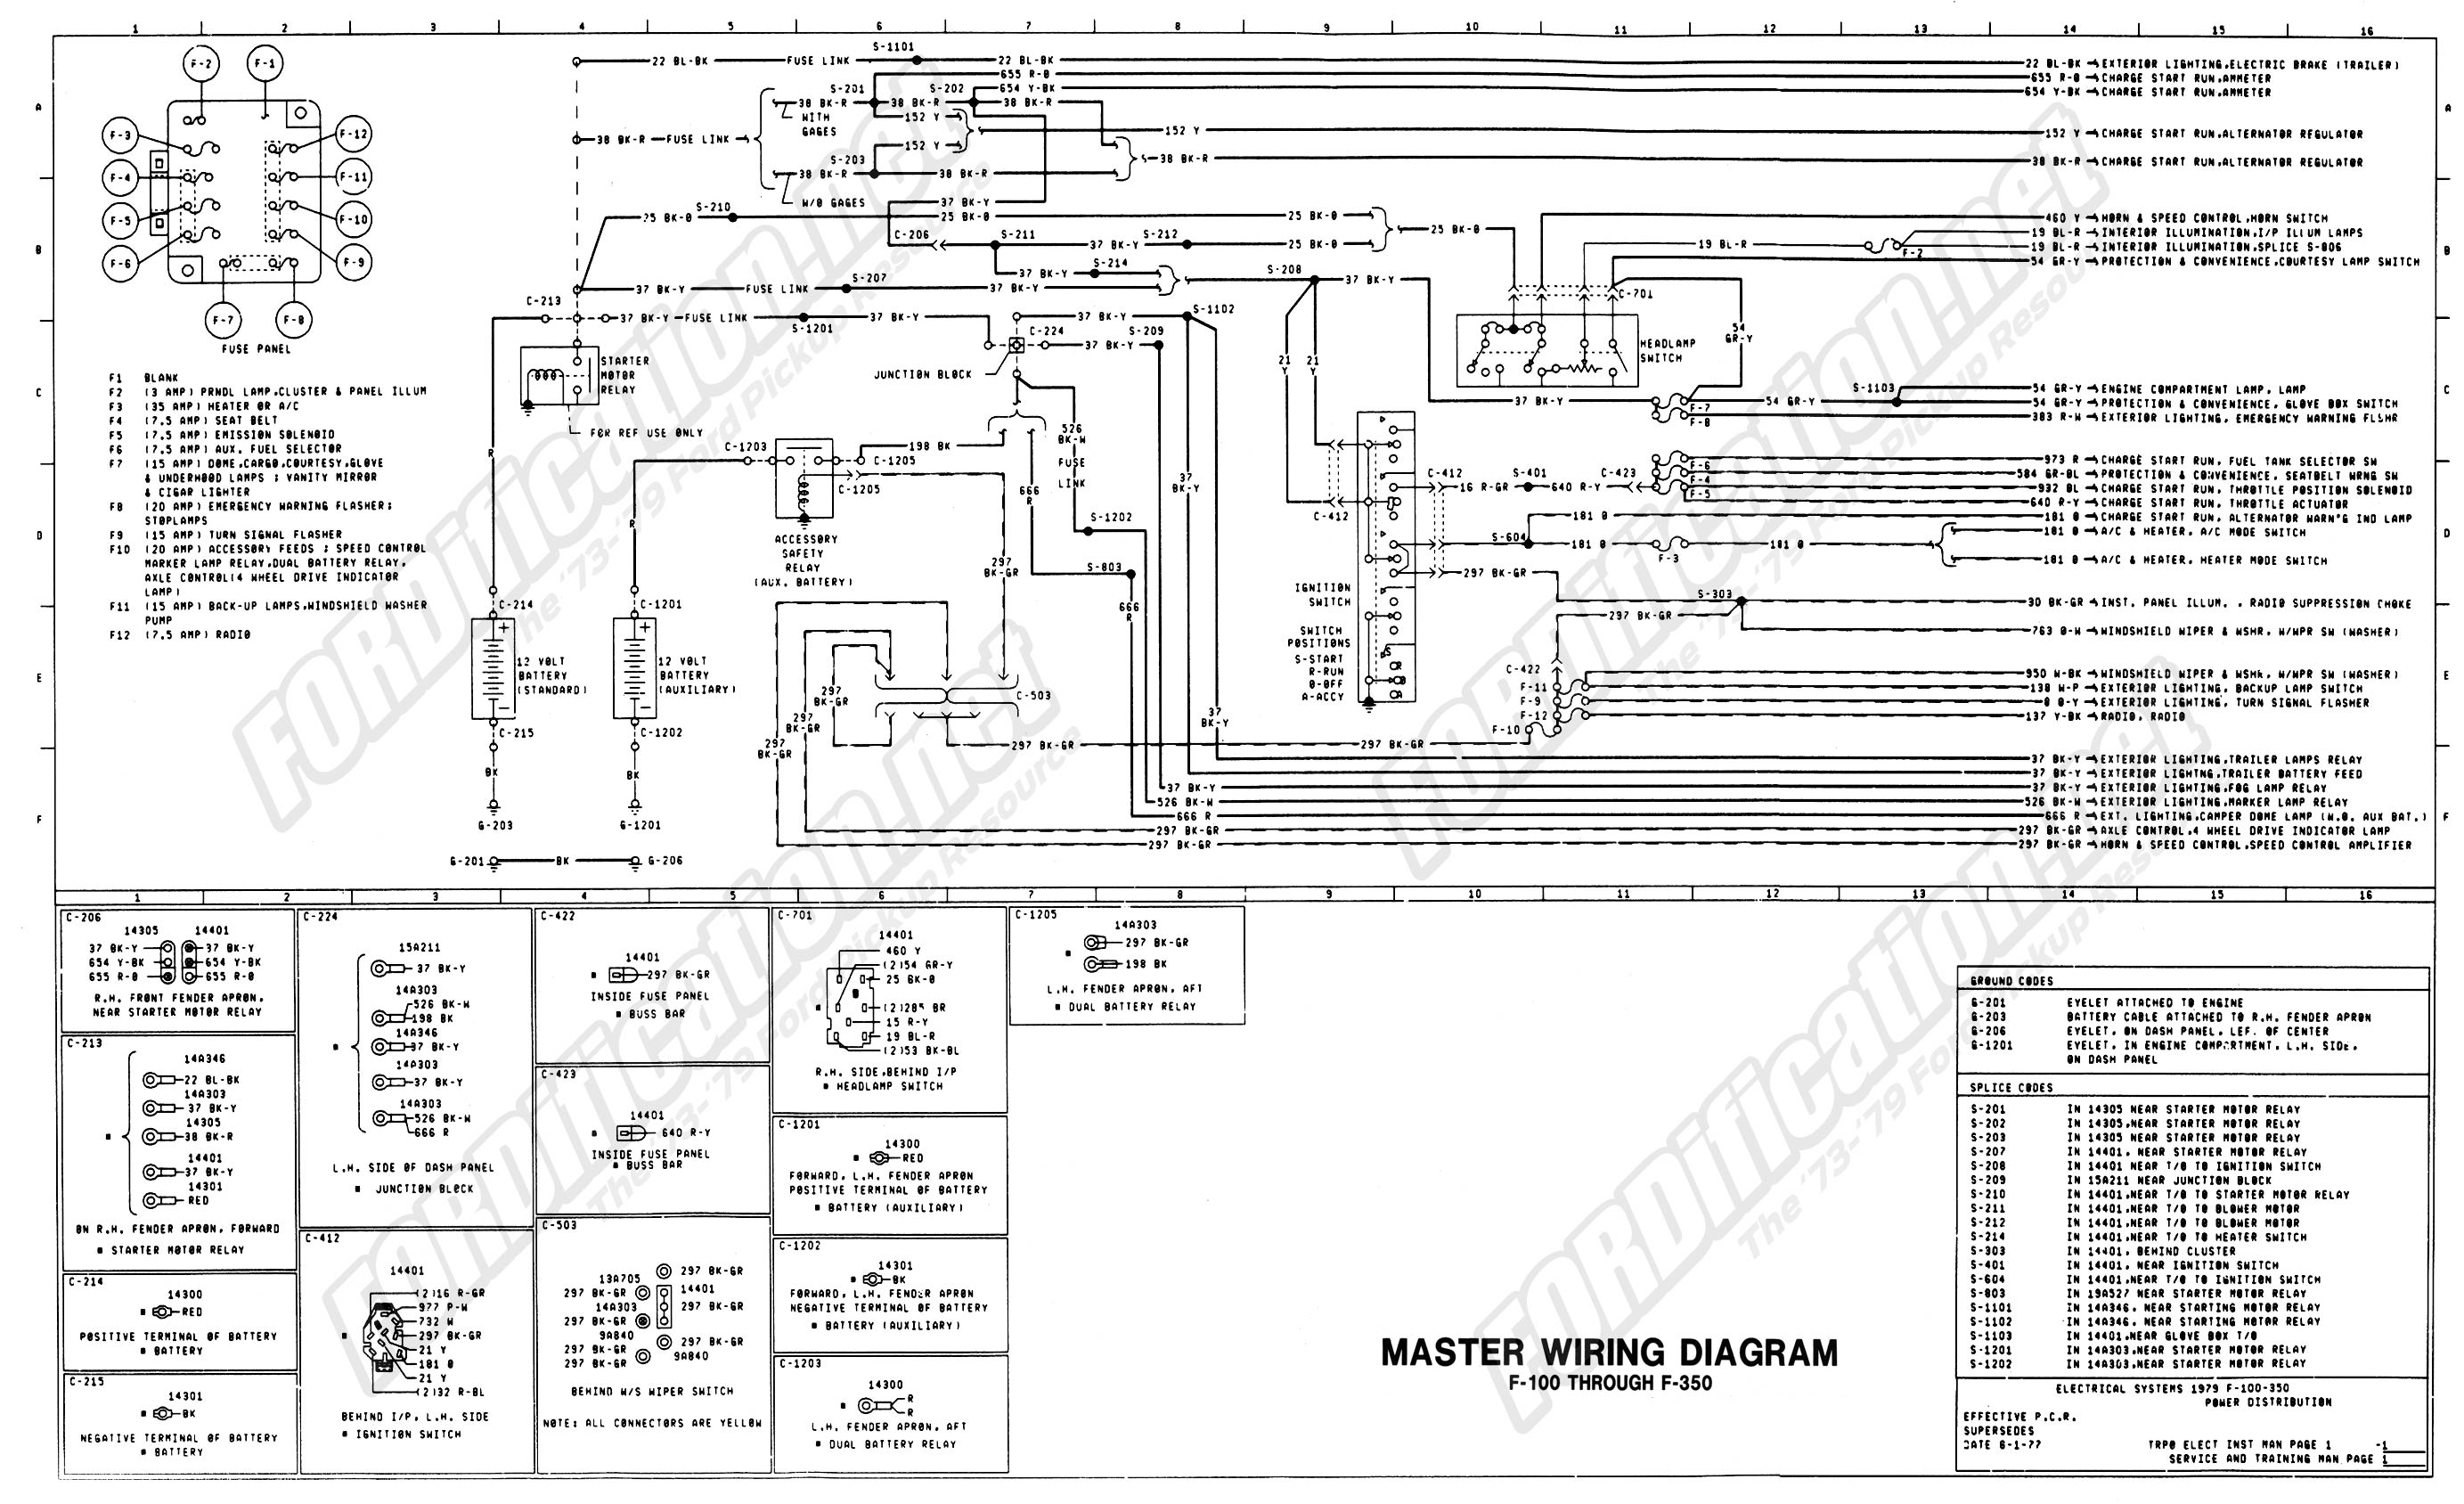 Kenworth Fuse Box Diagram Explore Schematic Wiring Kenworth T370 Wiring Diagram 1999 Sterling Dump Truck Diagrams Somurich Com 2007 T800 T270